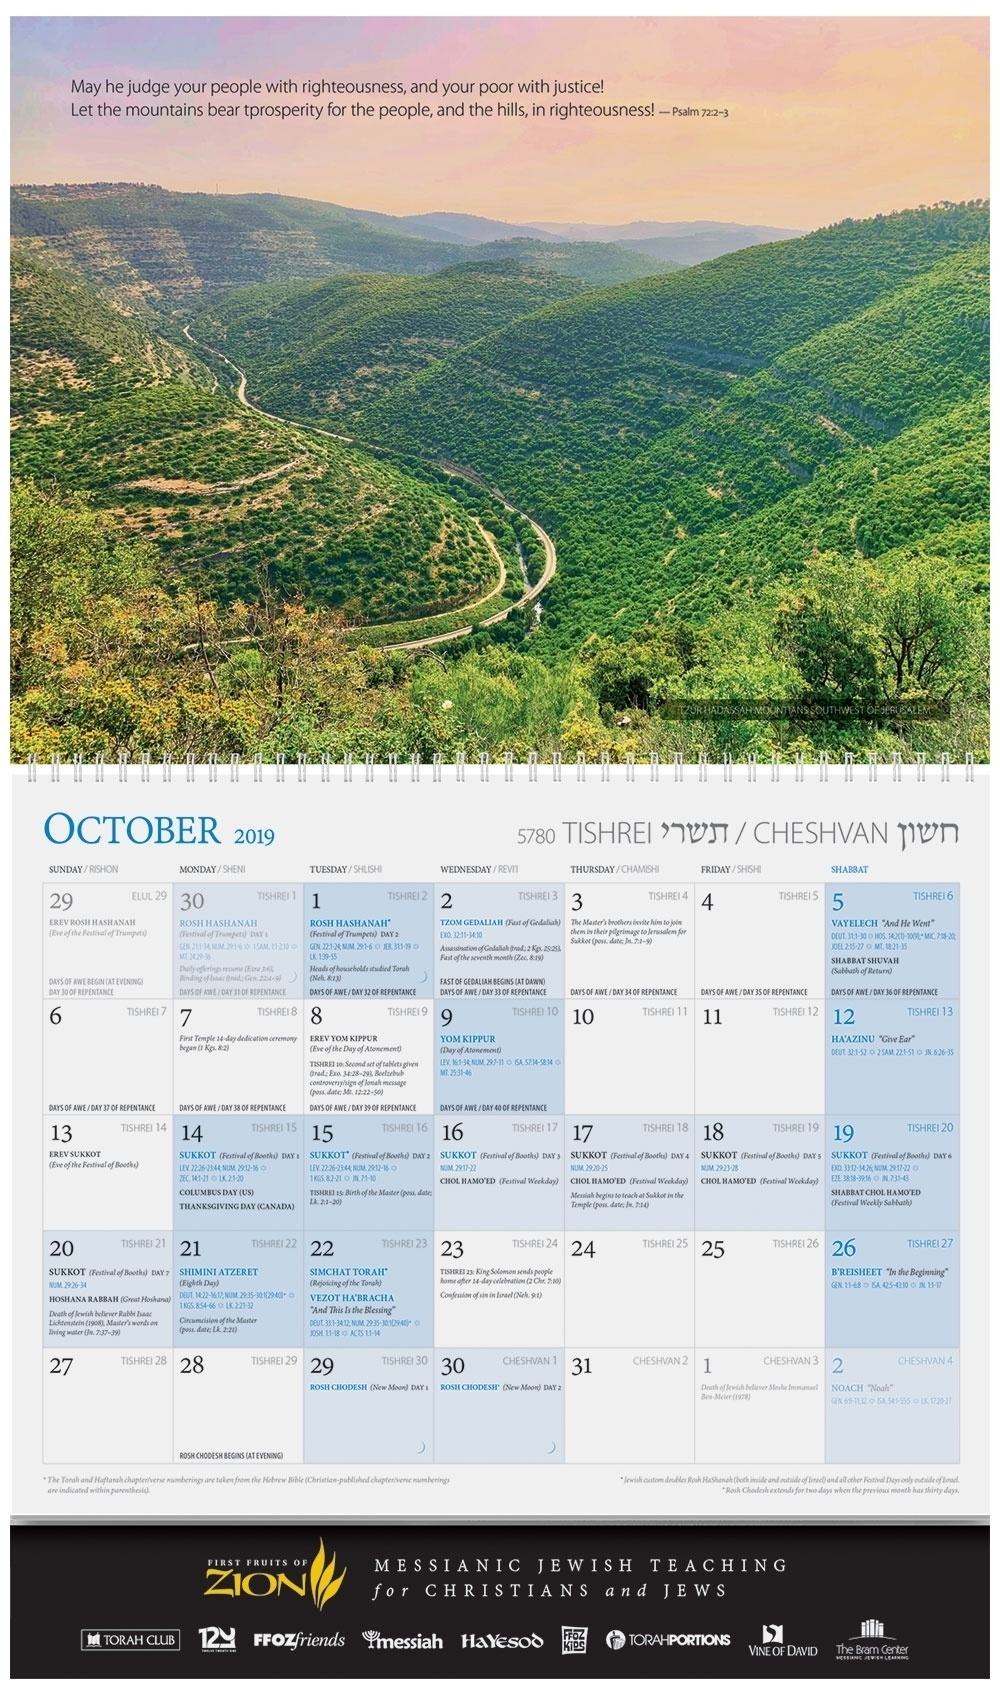 Weekly Torah Parsha Calendar For 2019/2020 - Calendar within Printable Torah Portion Reading Schedule